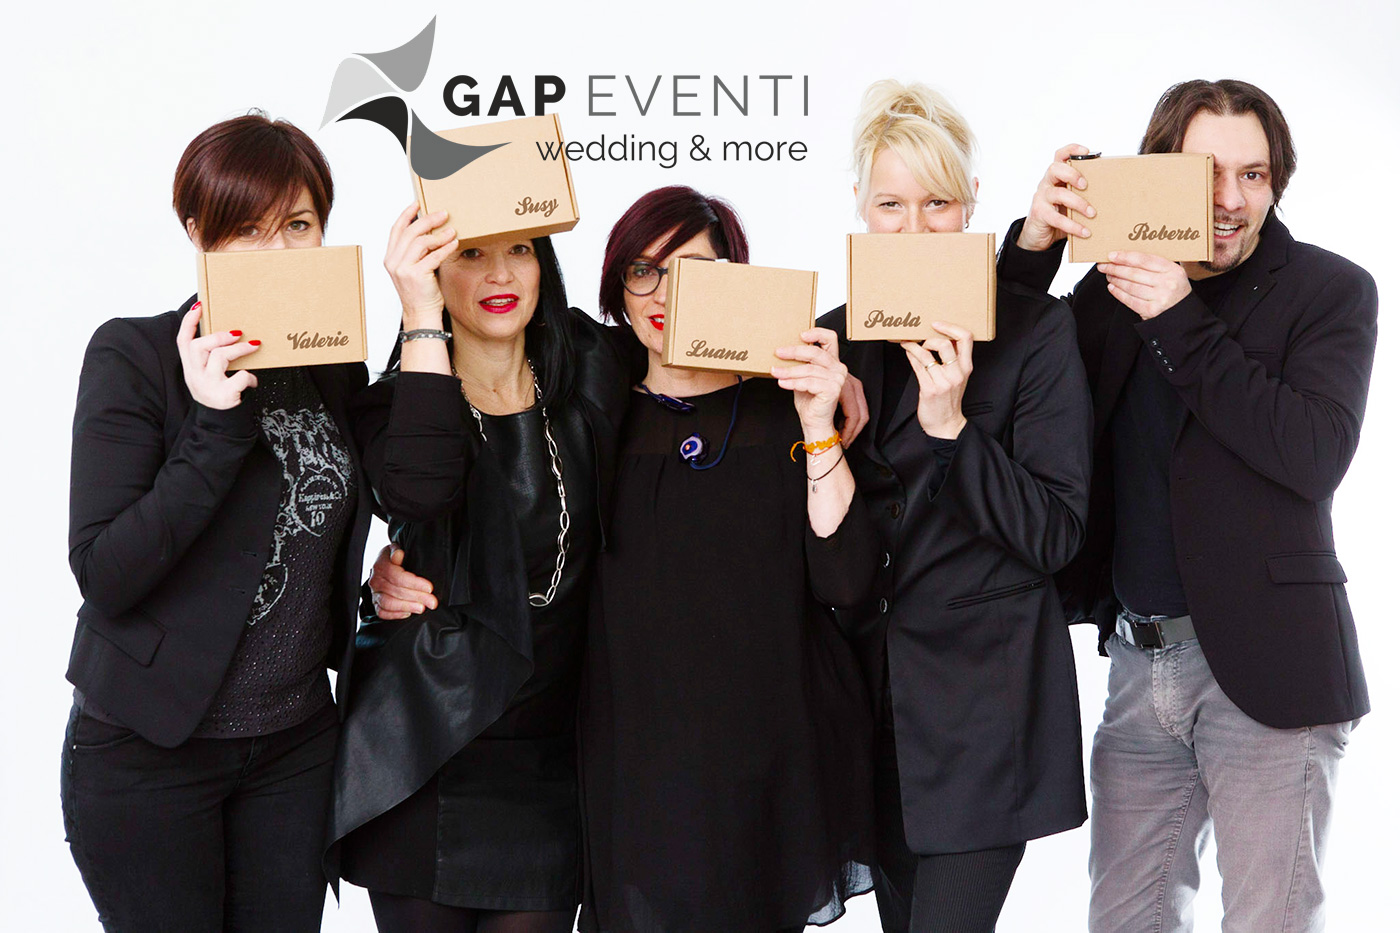 GAP Eventi: weeding & more